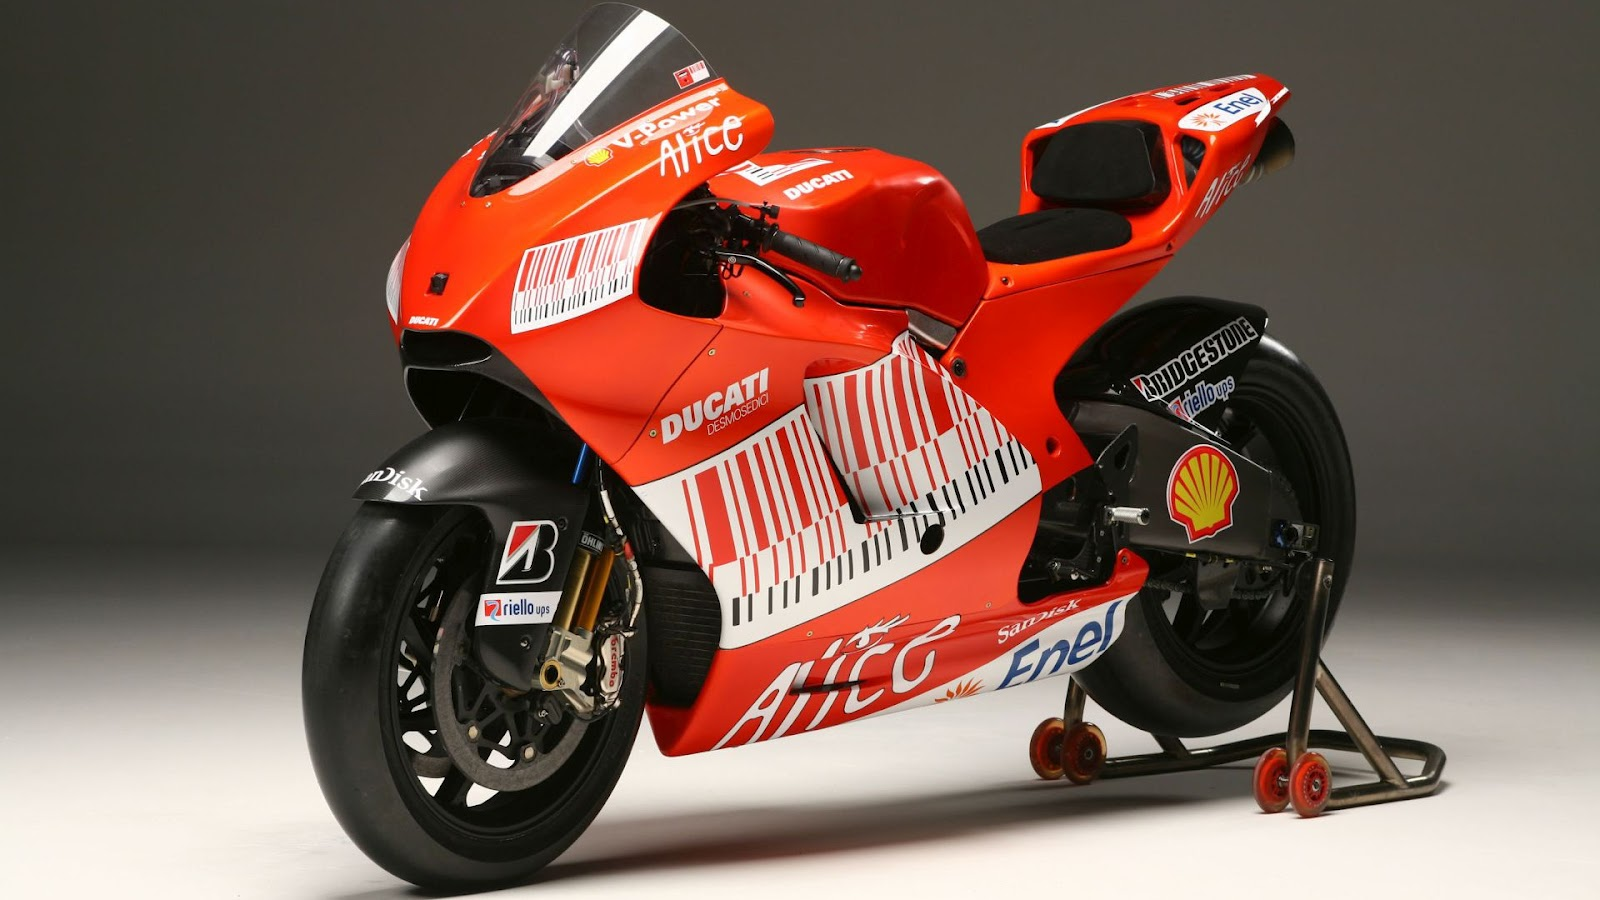 Ducati Sports Bike - Cars Wallpapers